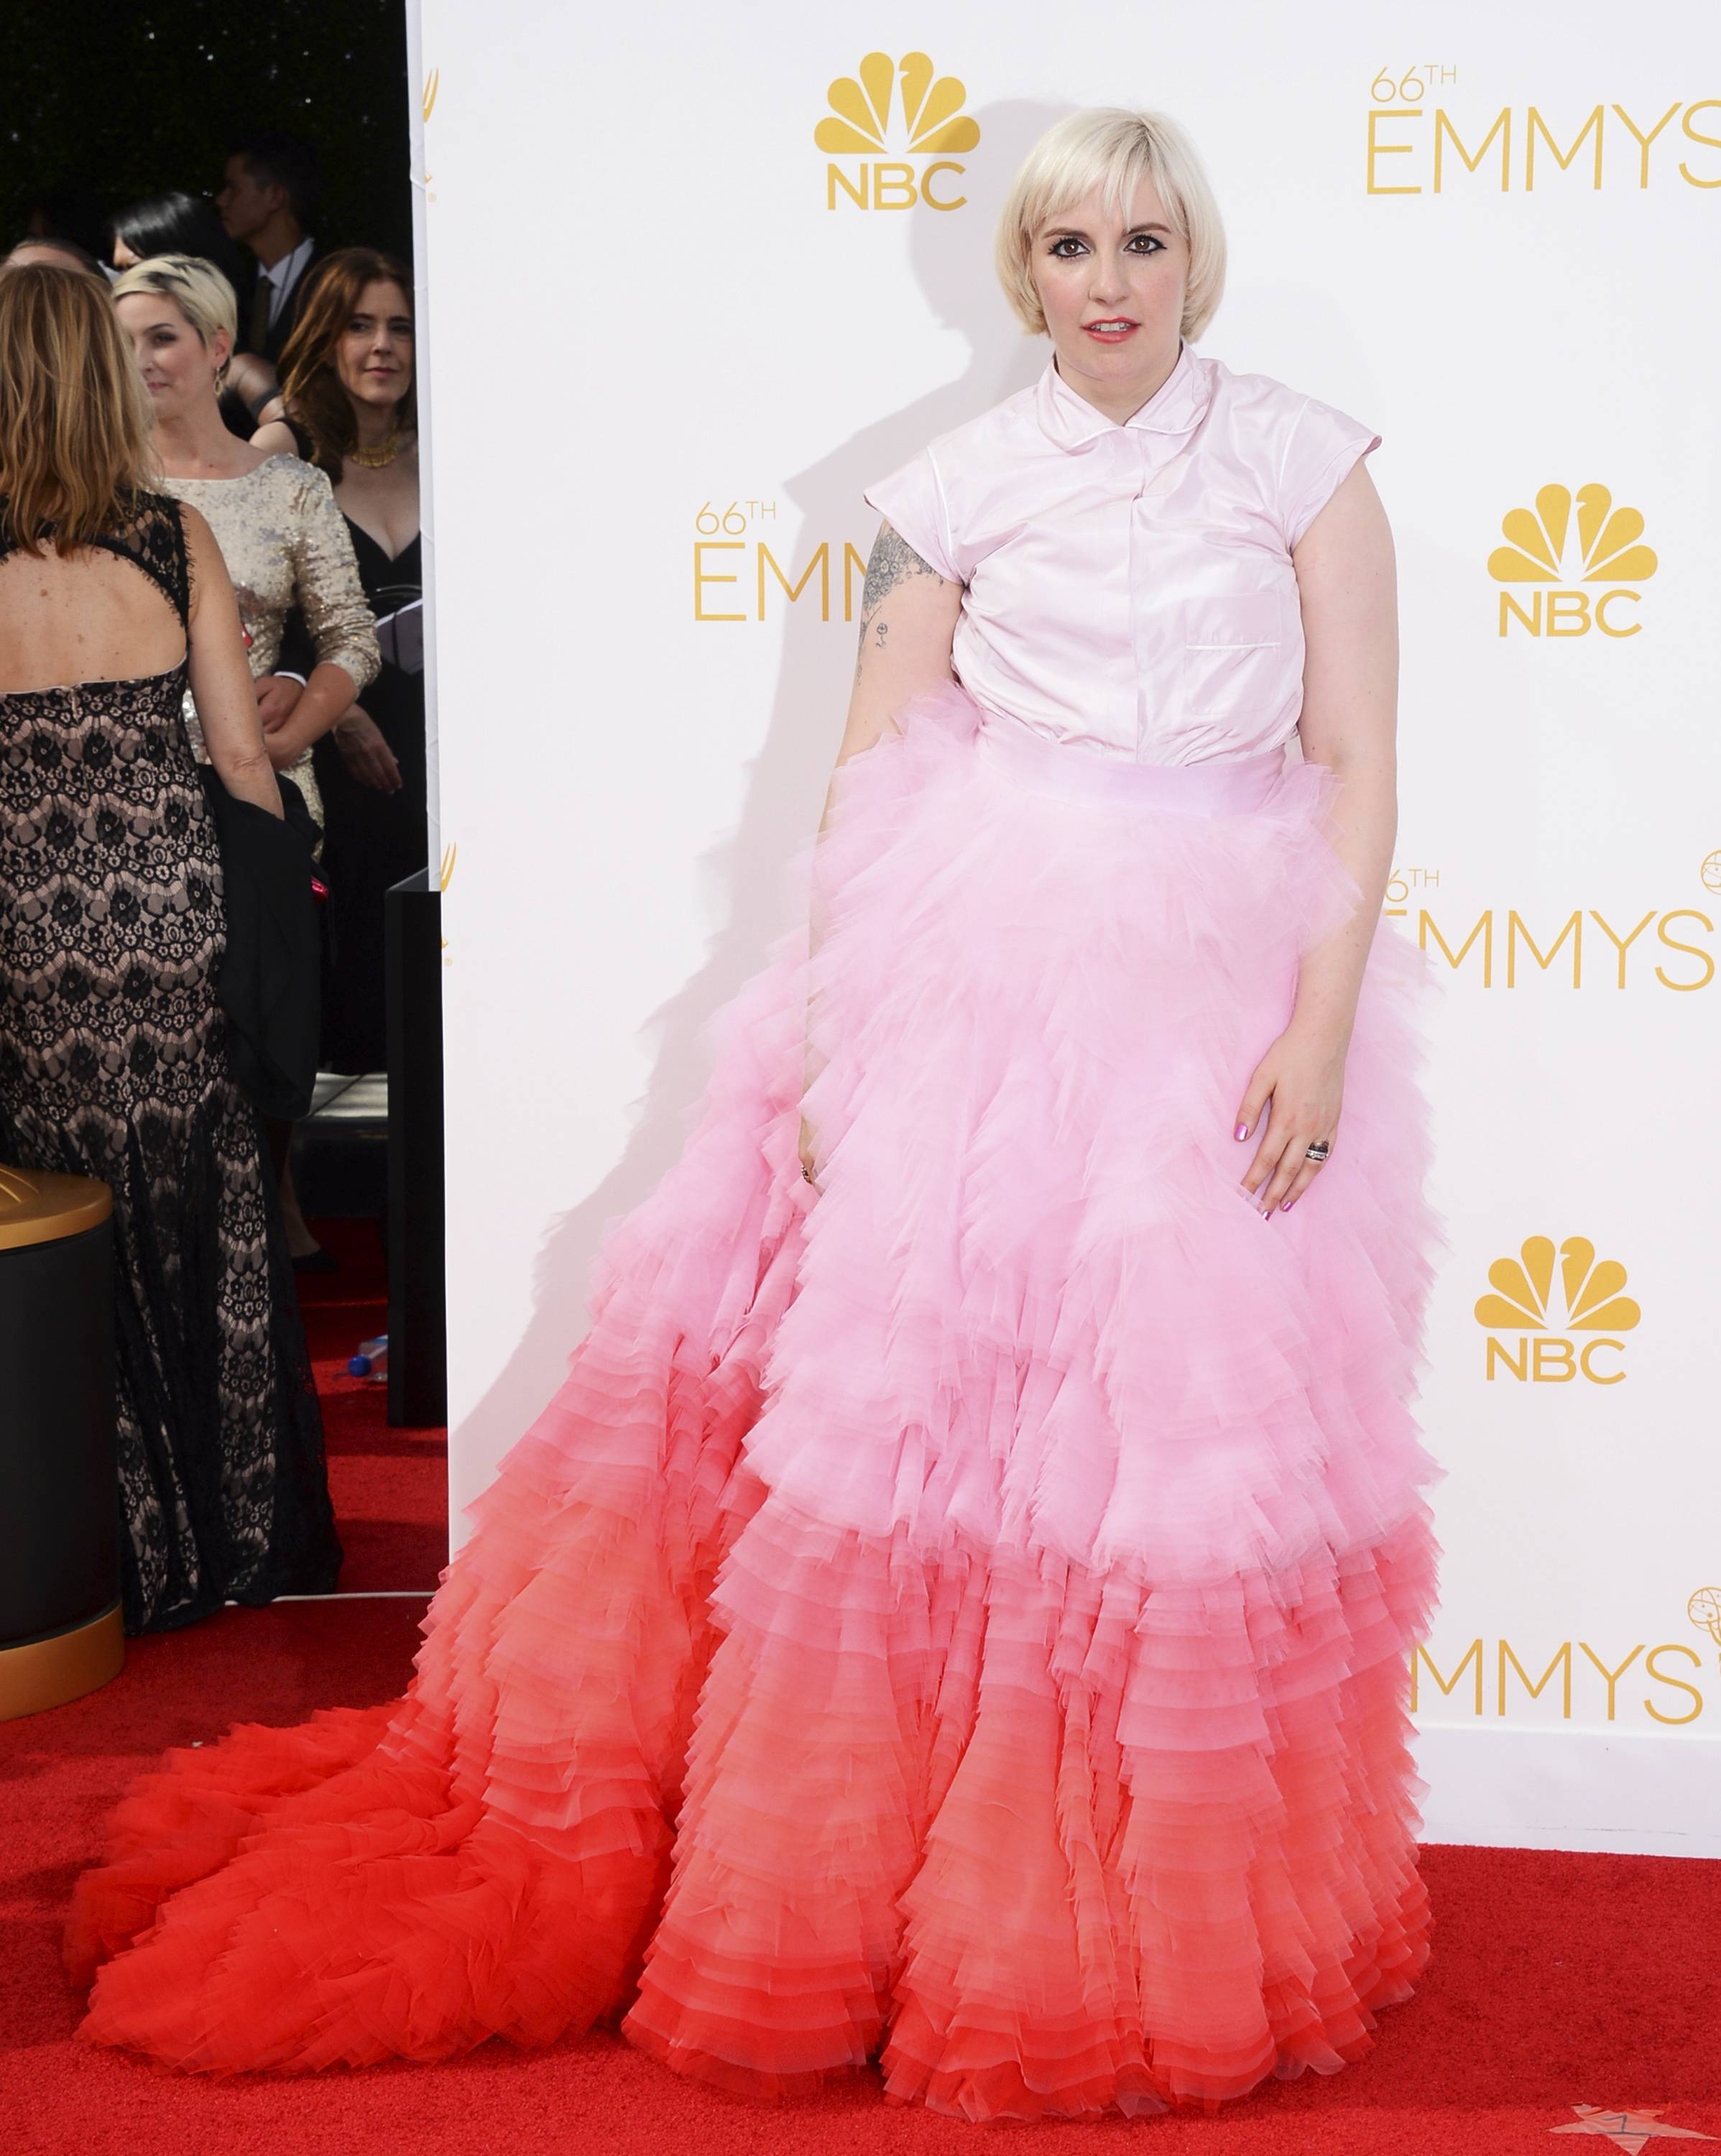 Lena Dunham arrives at the 66th Annual Primetime Emmy Awards at the Nokia Theatre.